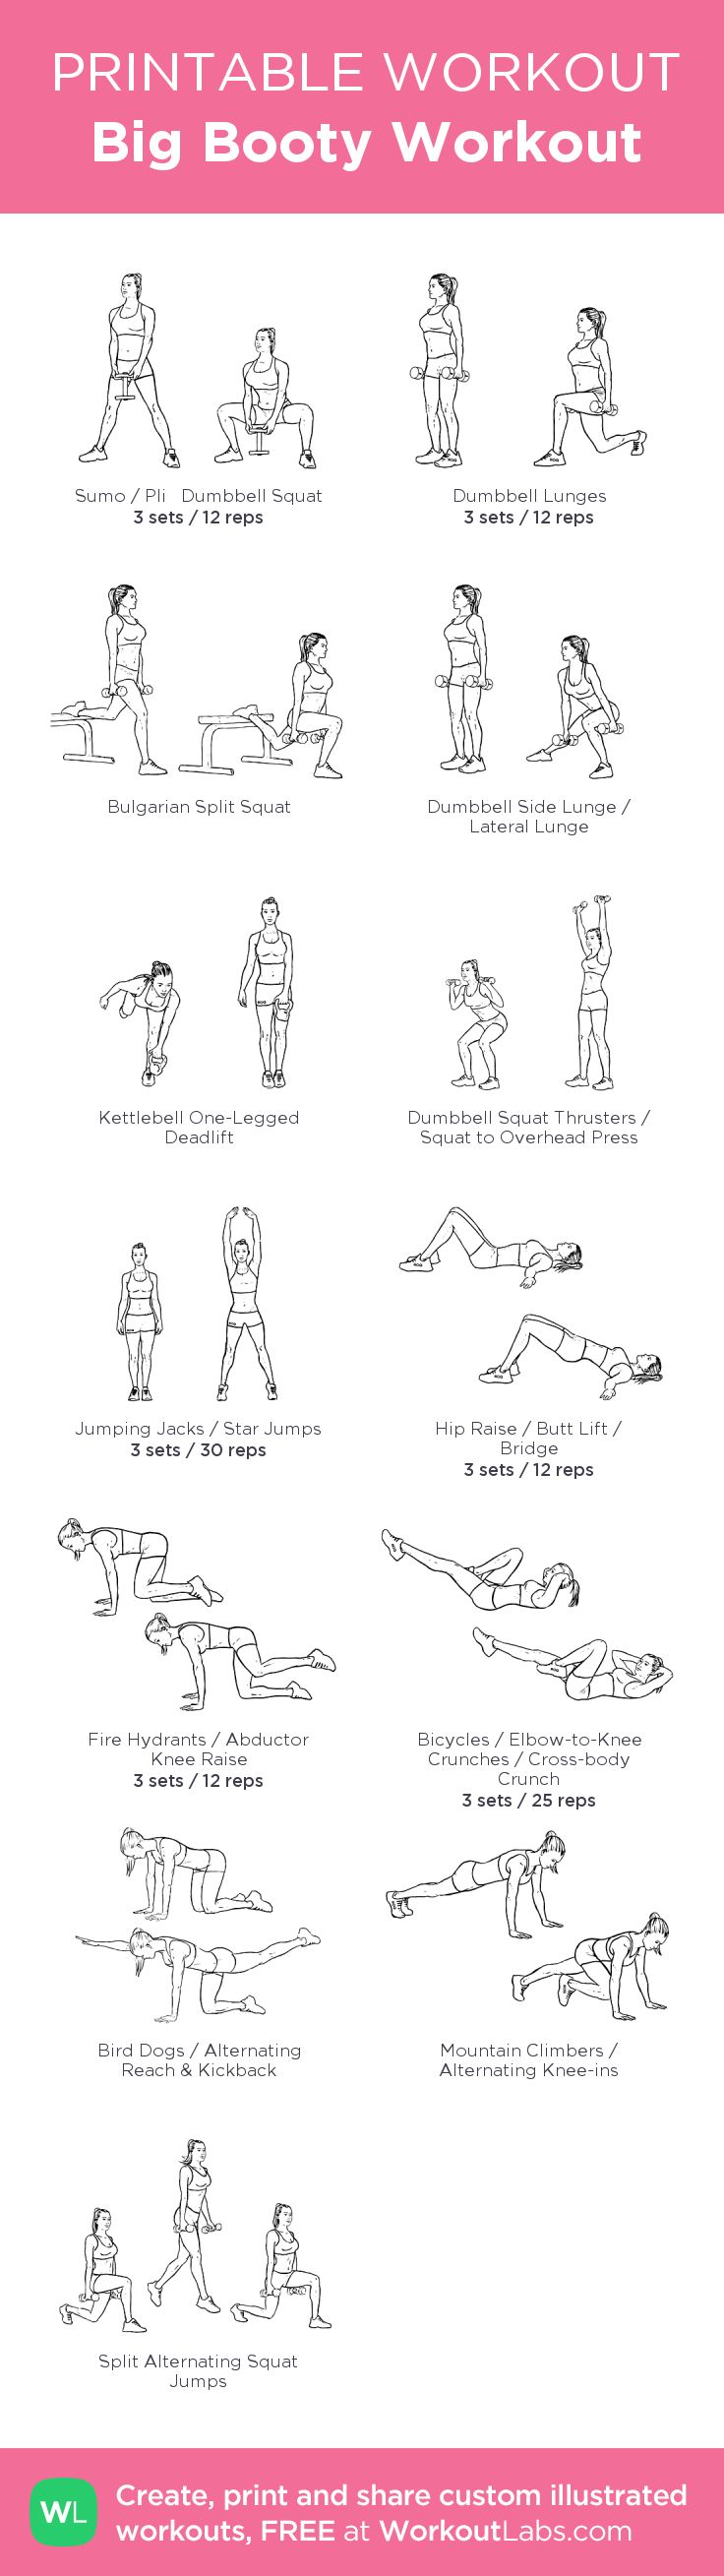 Big Booty Workout: my visual workout created at WorkoutLabs.com • Click through to customize and download as a FREE PDF! #customworkout